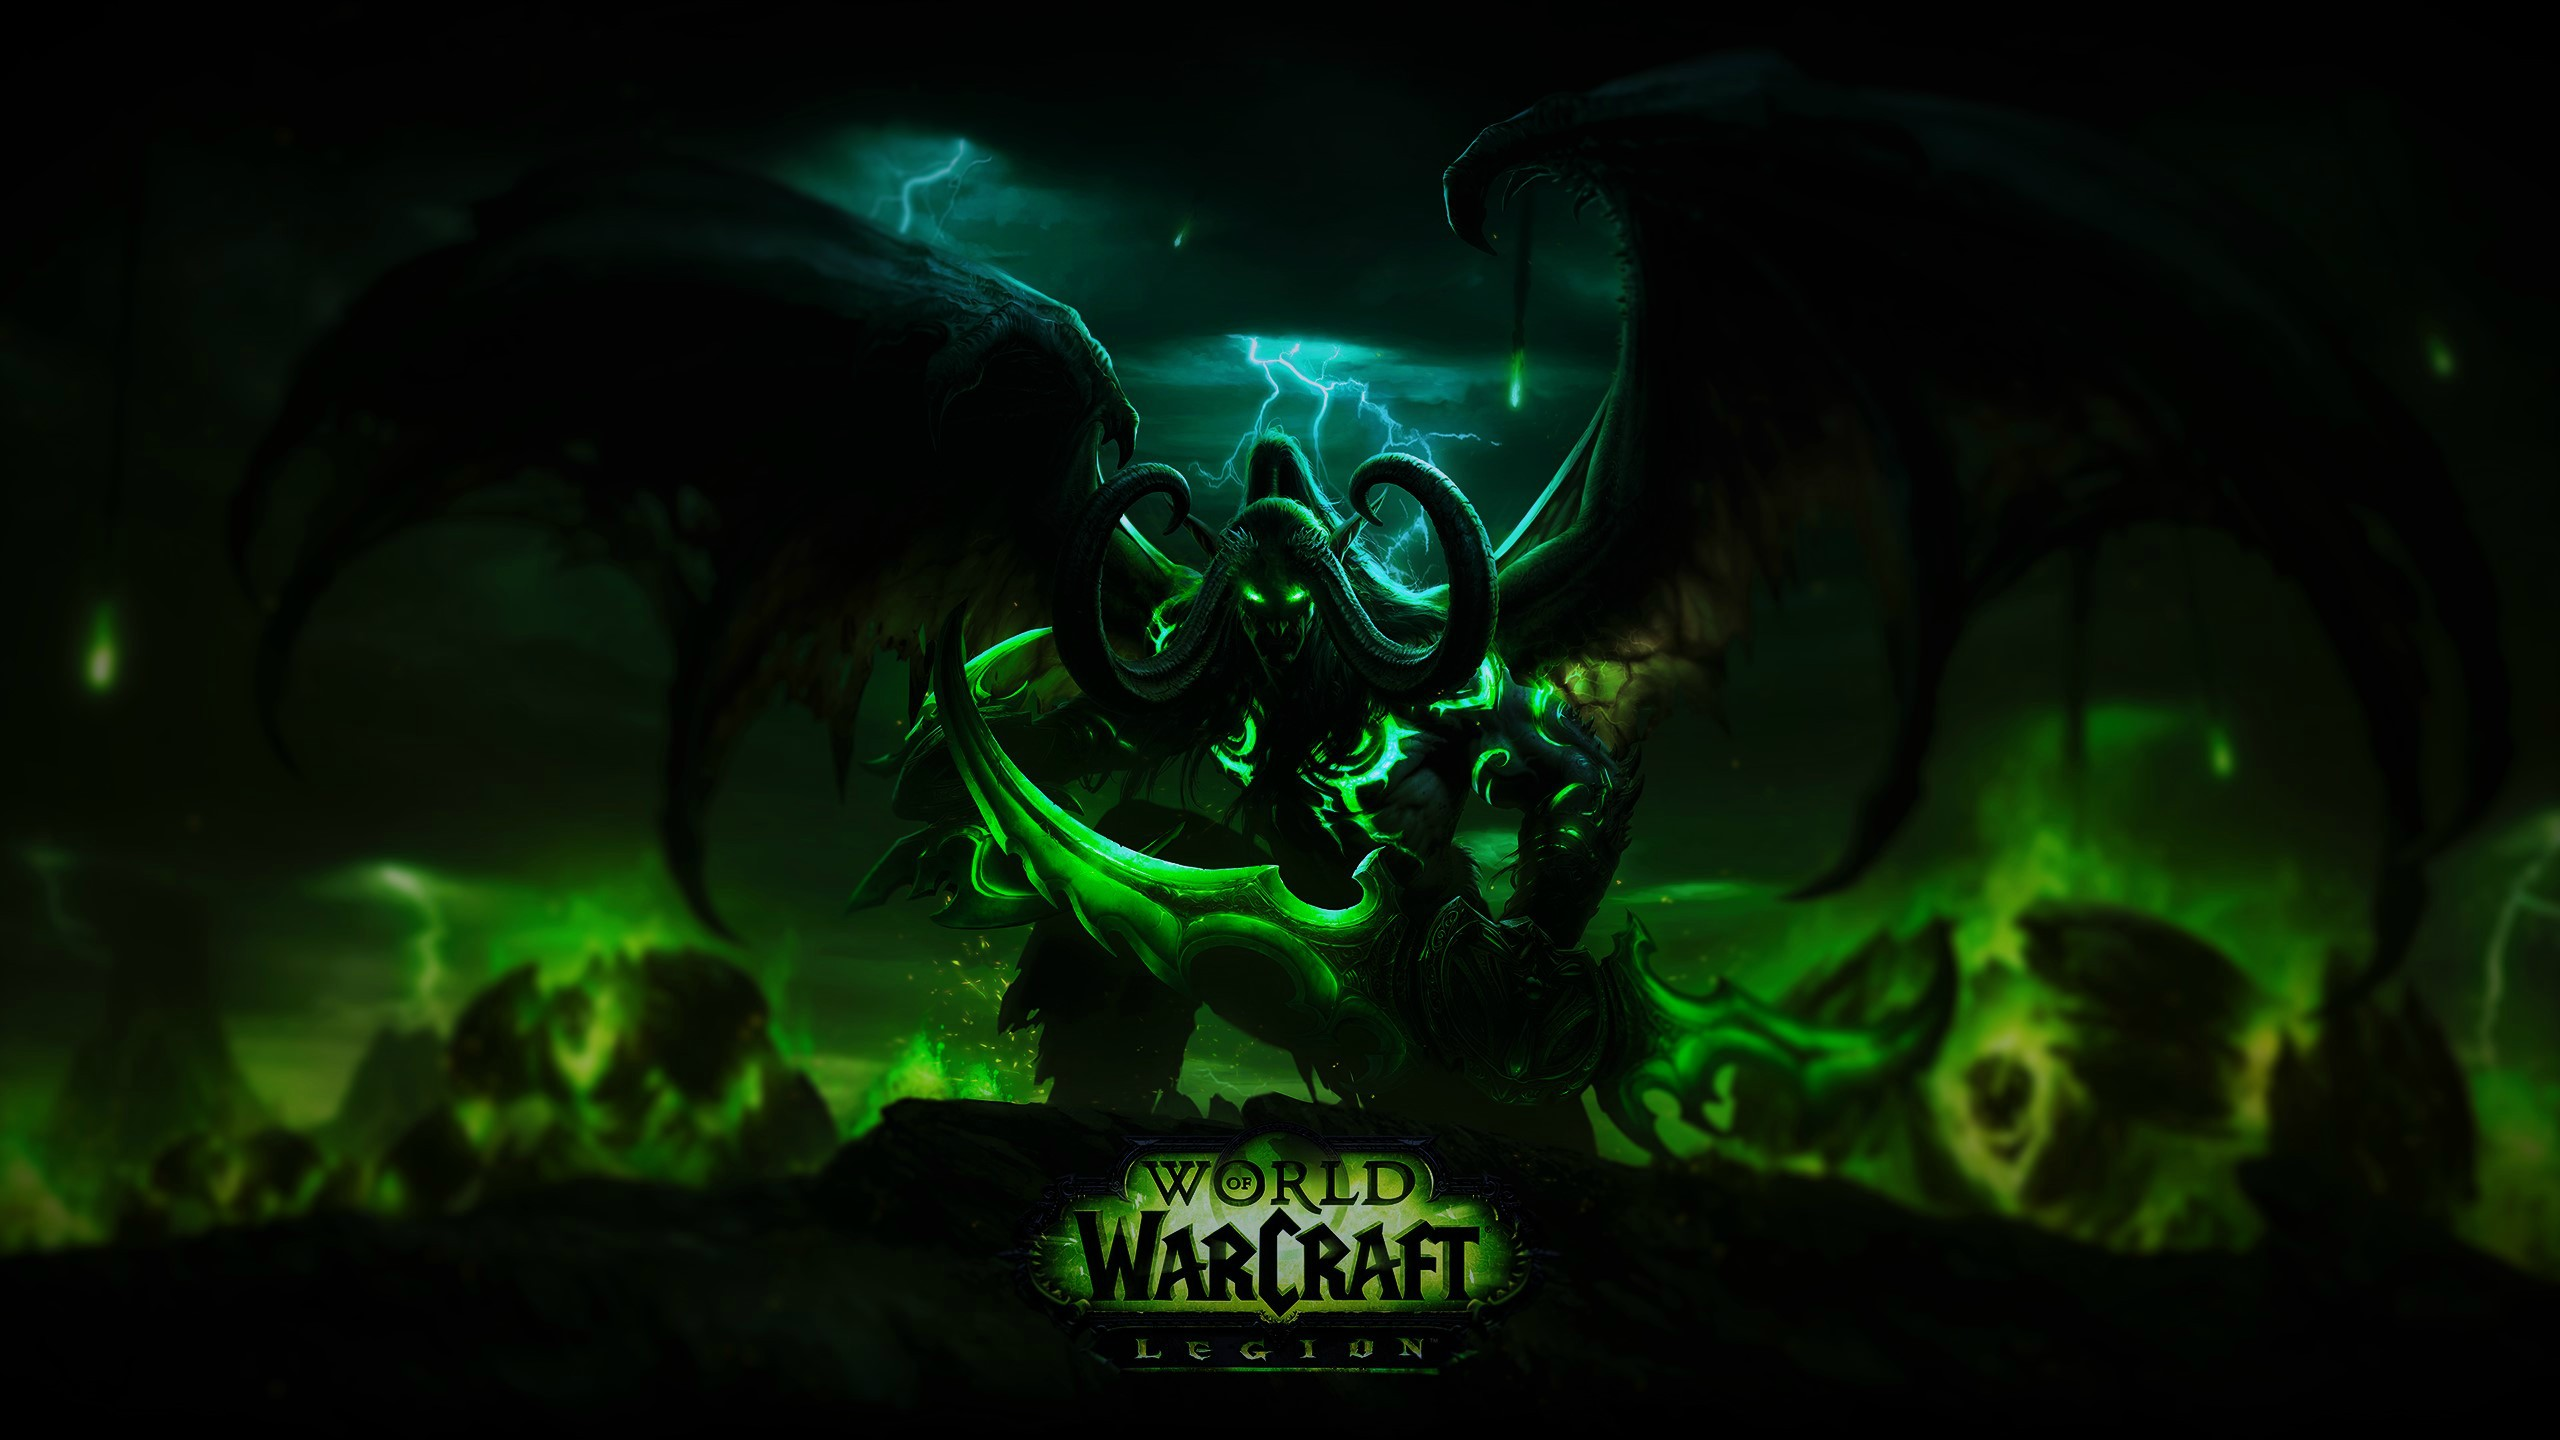 Wow Legion Wallpaper Images Hd Wallpapers Buzz 2560x1440